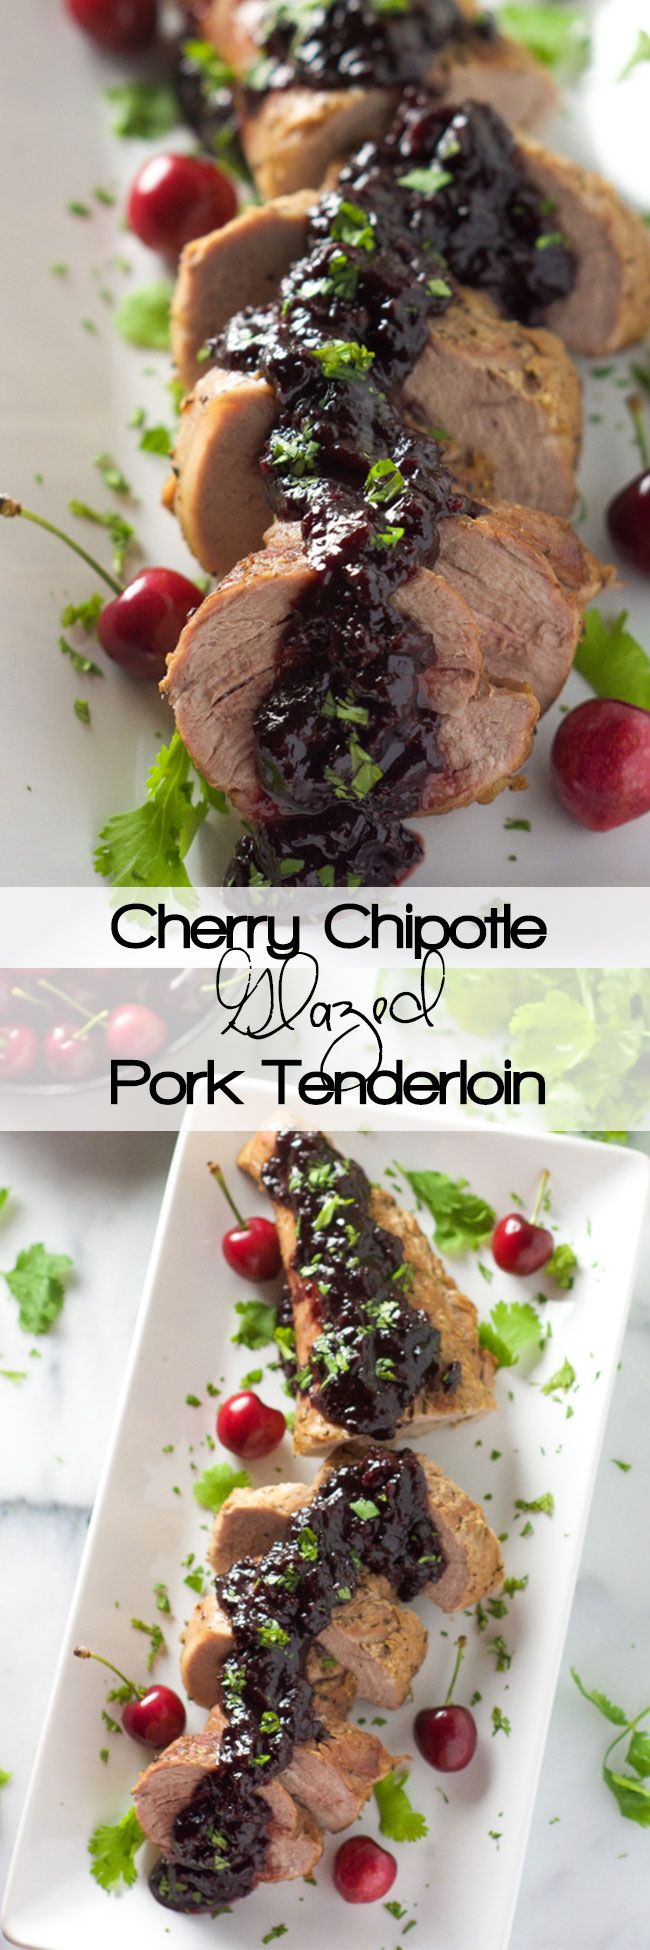 Cherry Chipotle Glazed Pork Tenderloin is a simple 5 ingredient dinner! Tender pork glazed with a chipotle spiked cherry maple sauce!